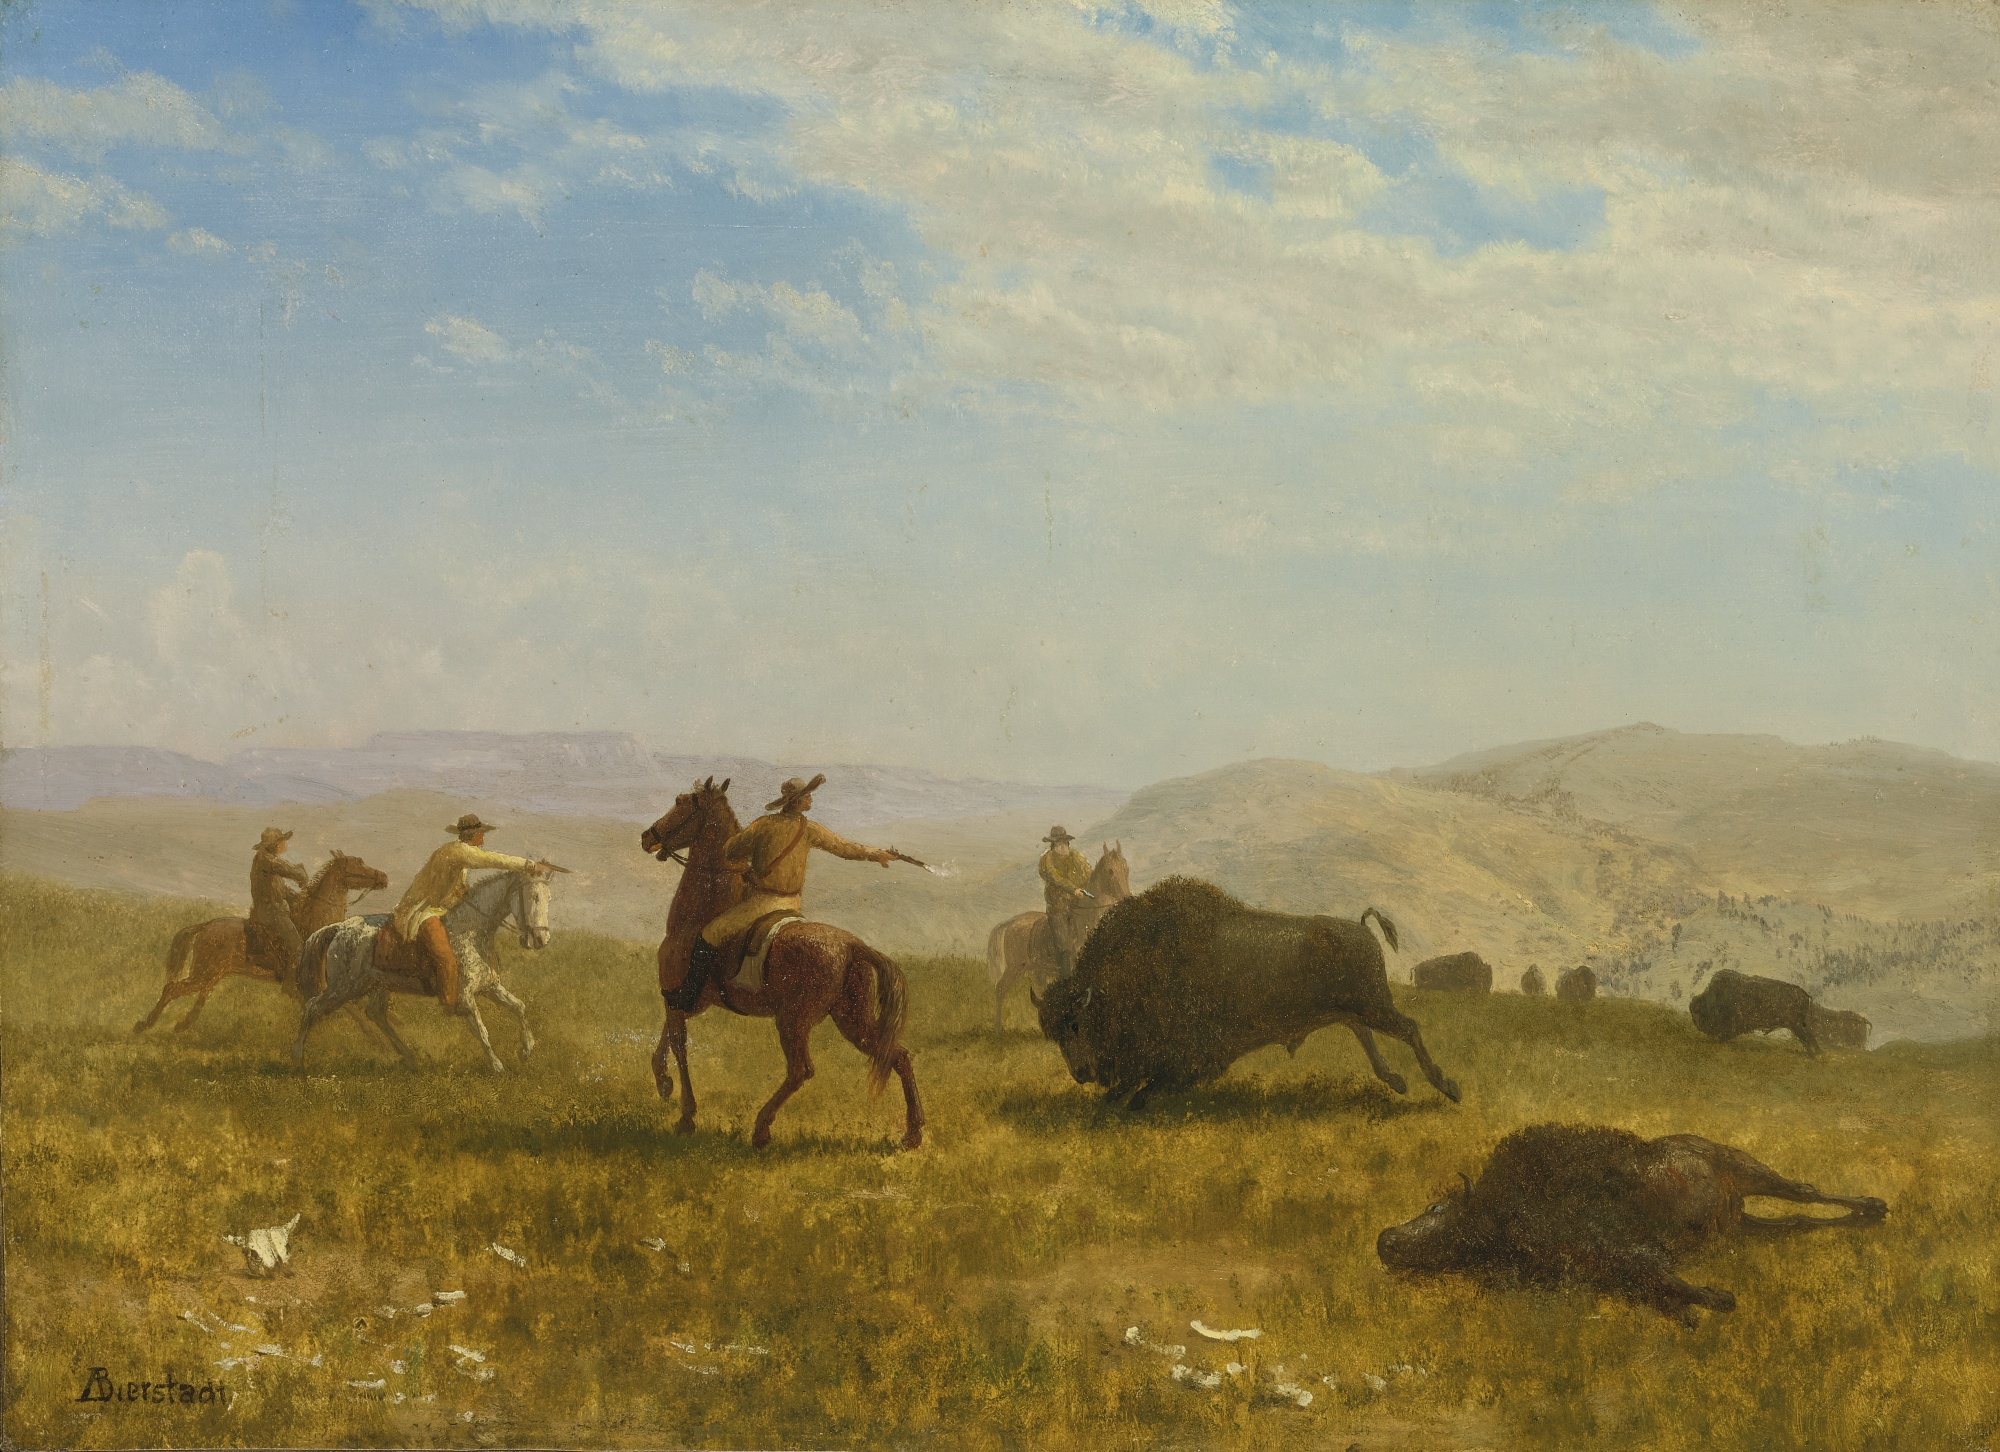 Cowboys shooting buffalo in the wild west